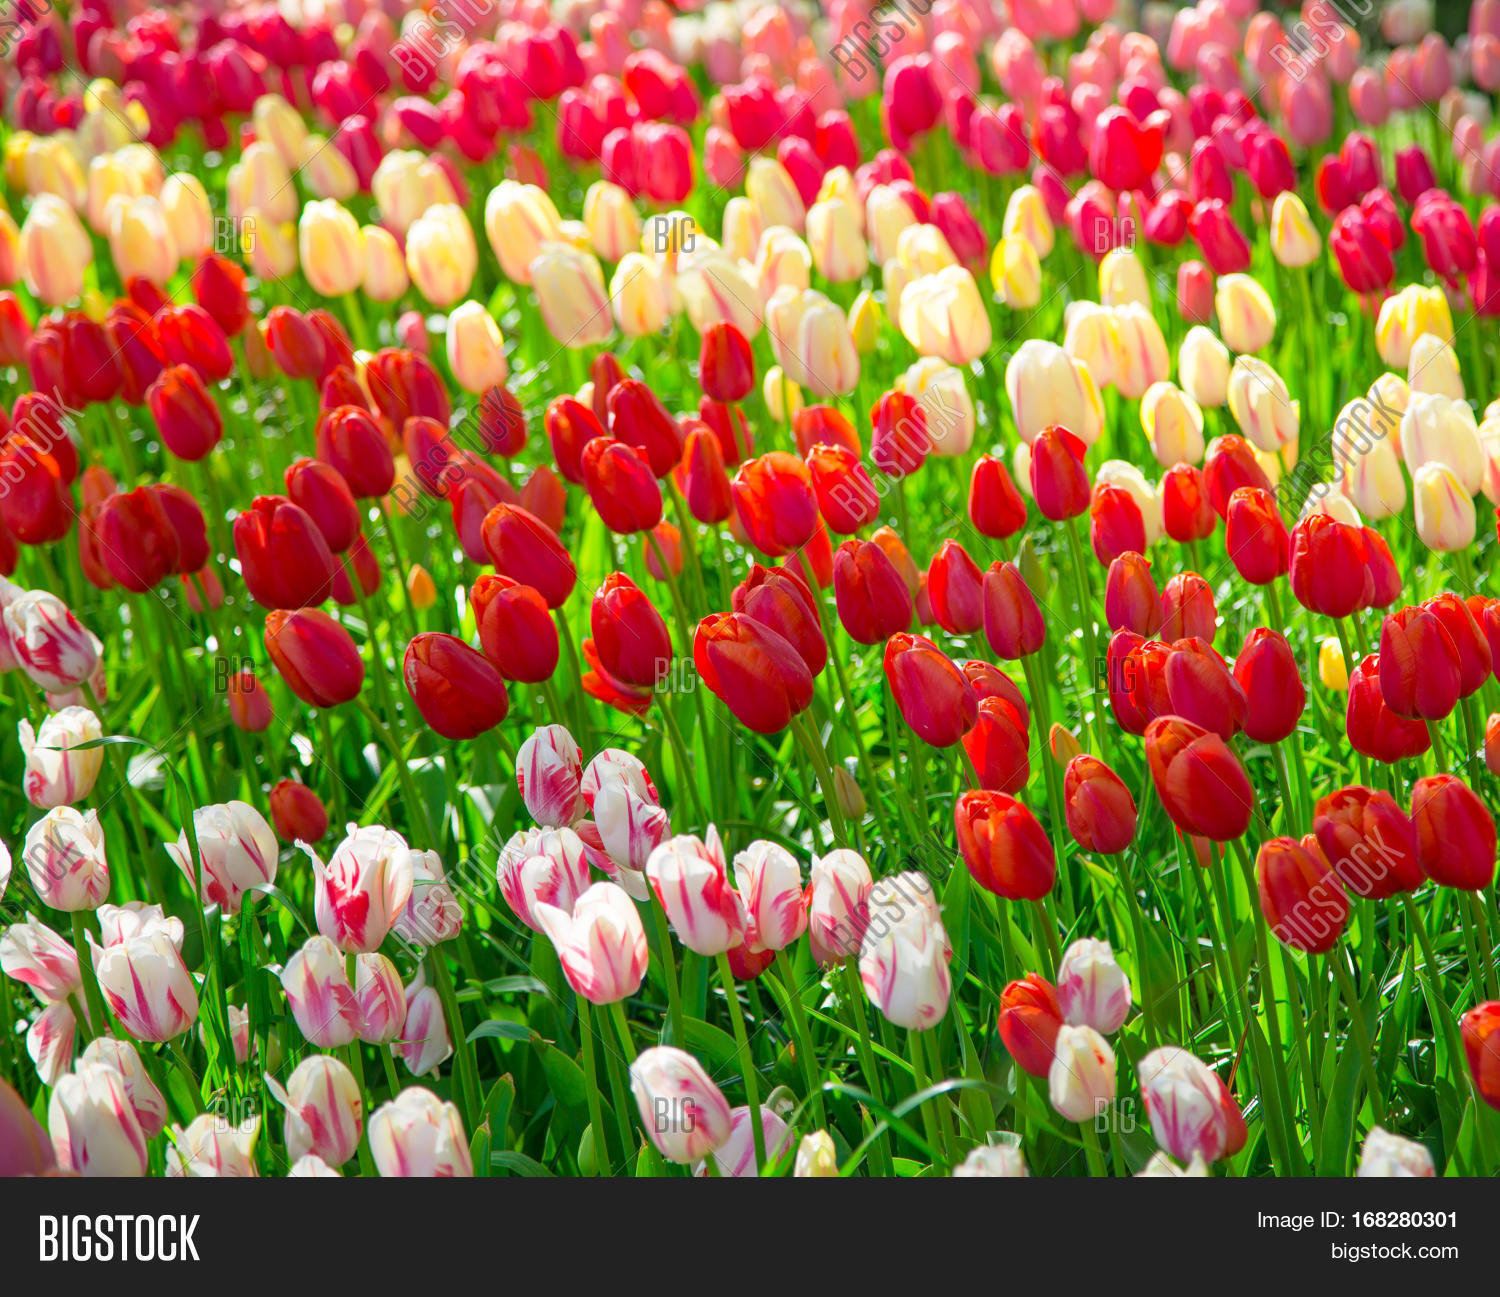 Flowers tulips glade red pink image photo bigstock flowers tulips glade of red pink and white fresh tulips colorful tulips in mightylinksfo Image collections